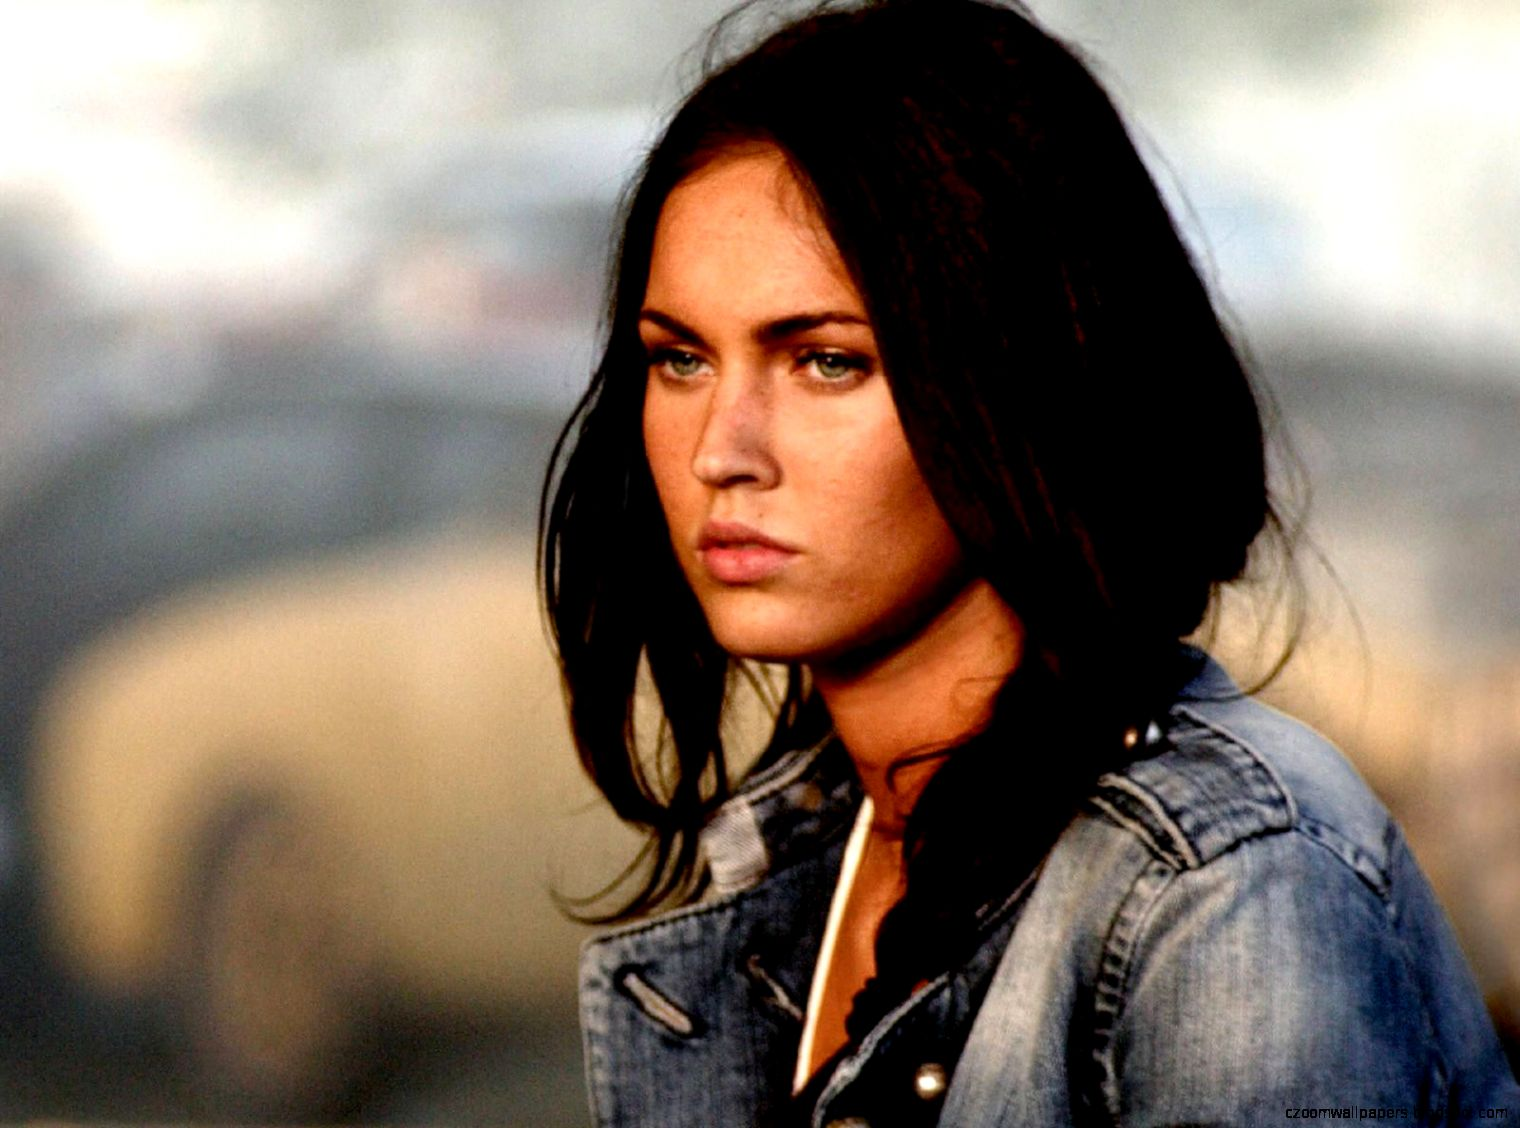 Transformers Actress Megan Fox